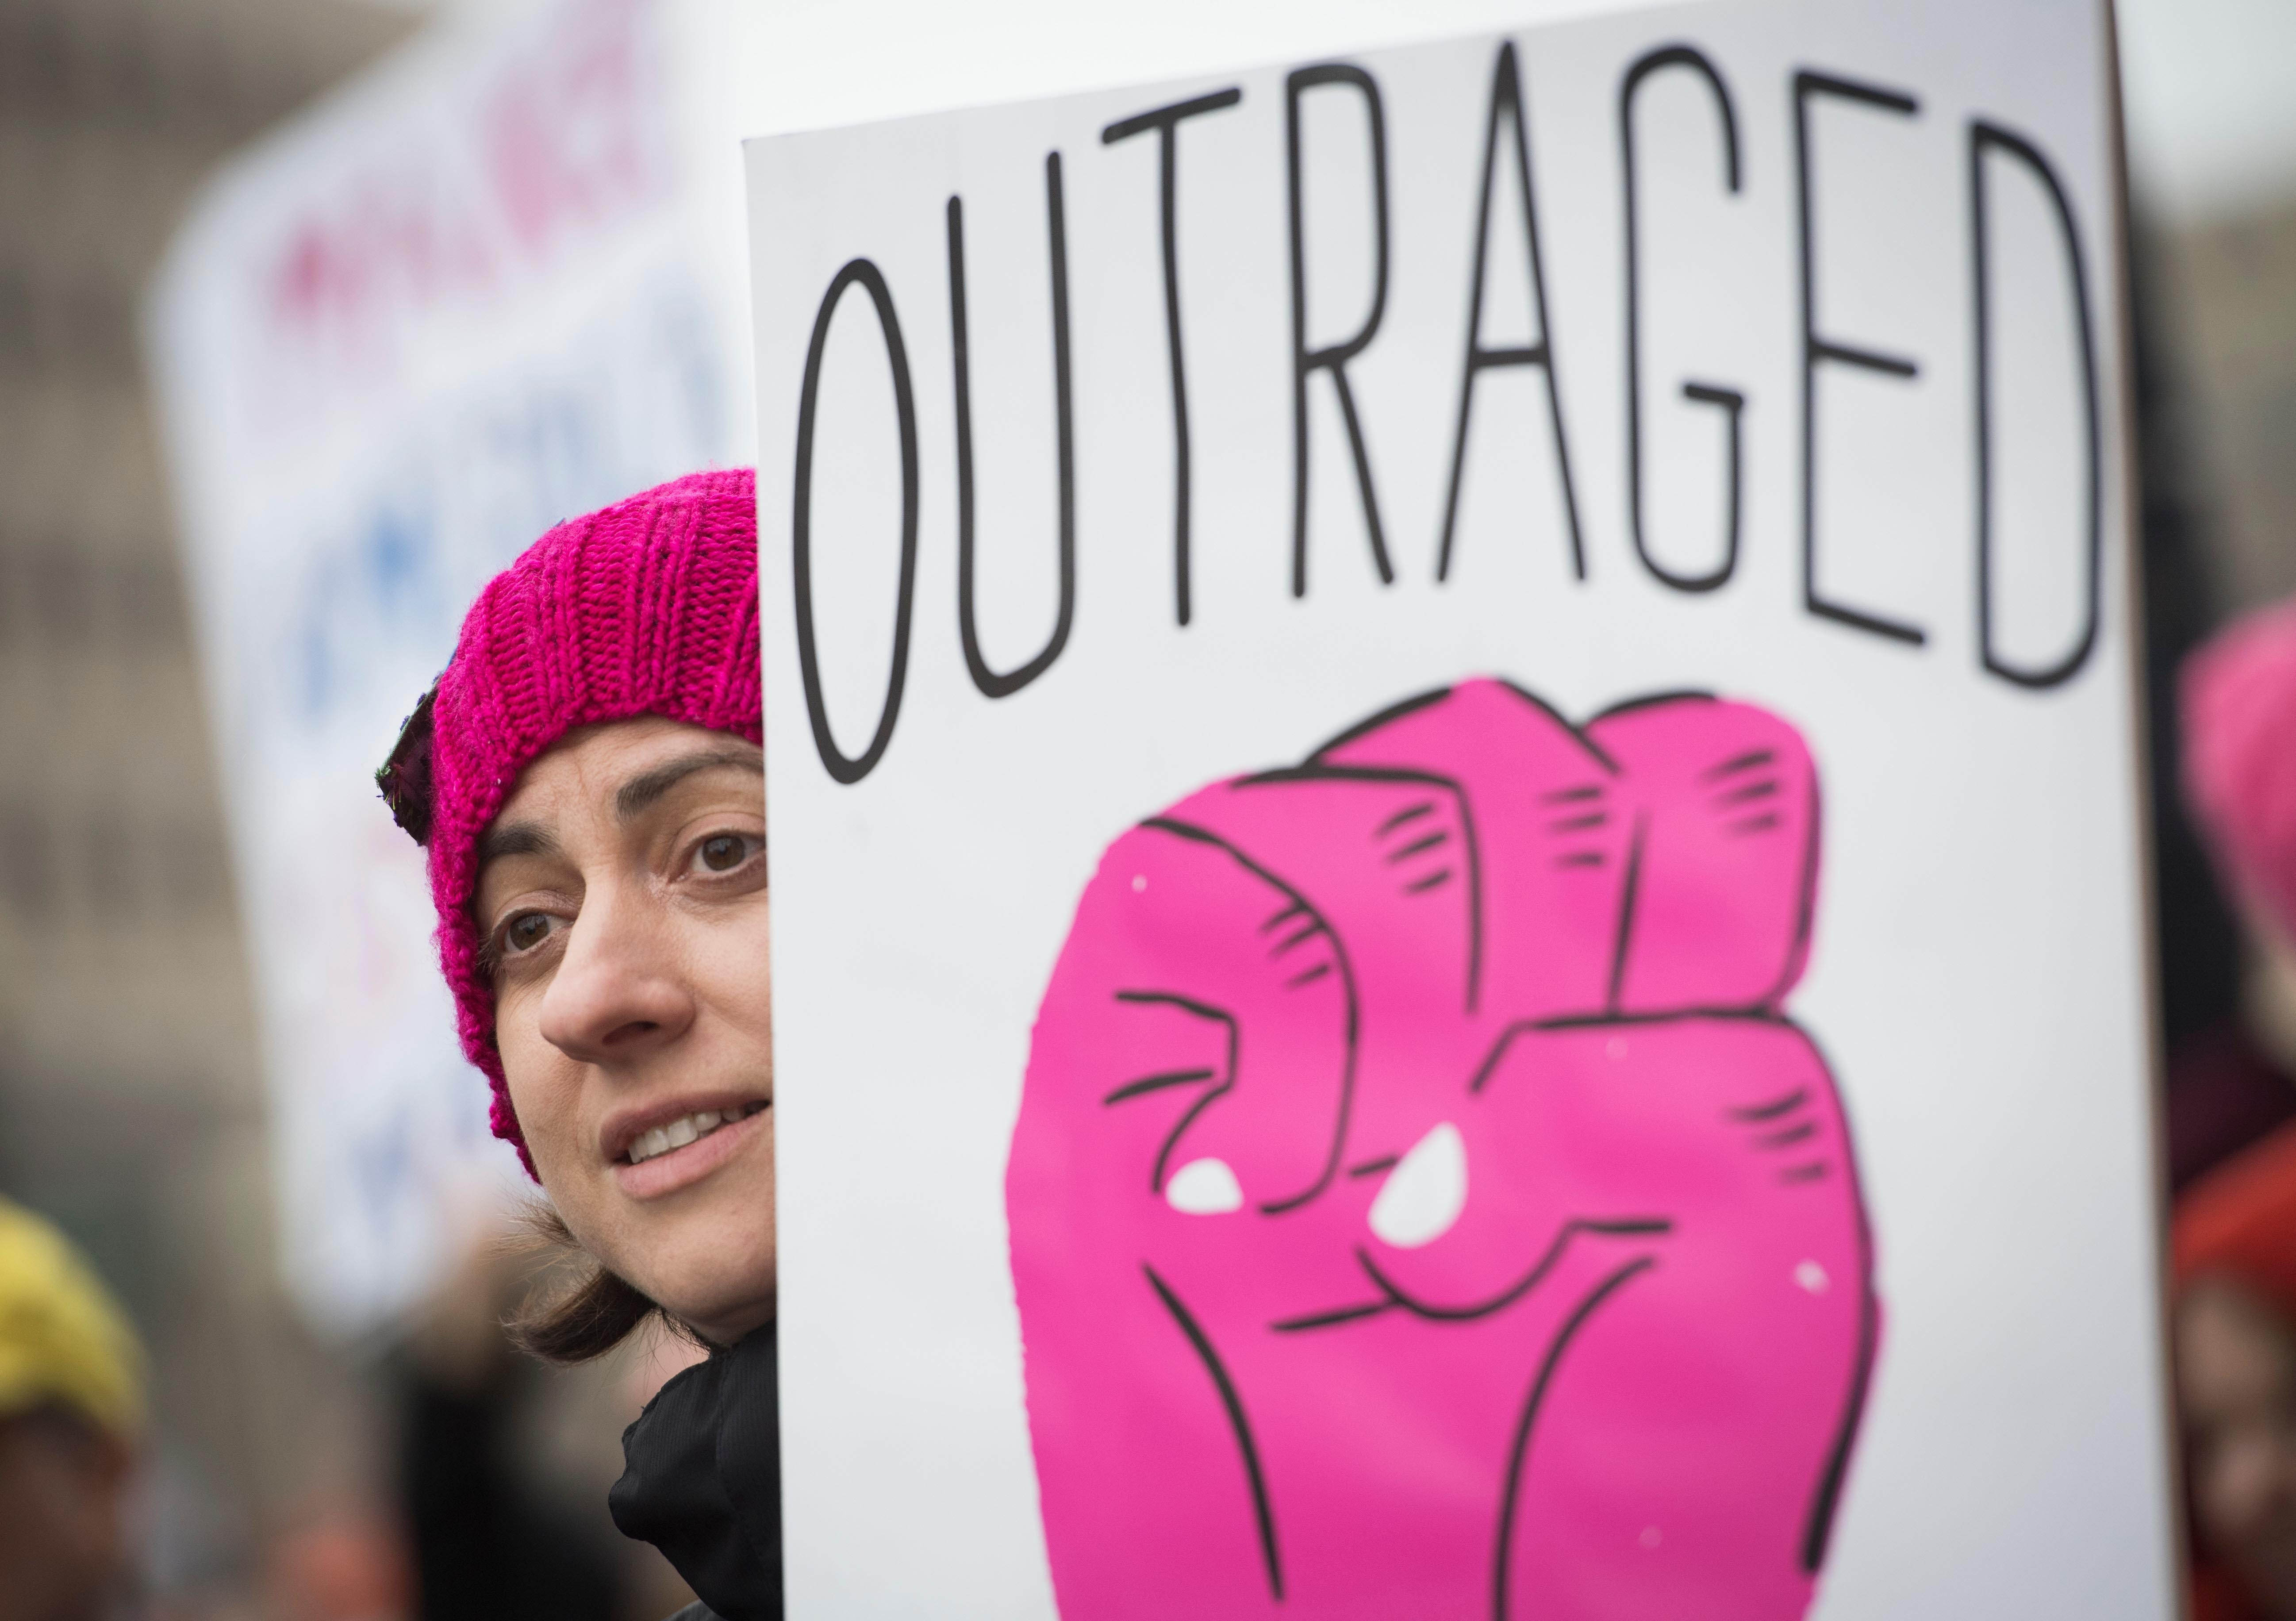 National Women's March is moving the cause of women forward — don't let critics derail it